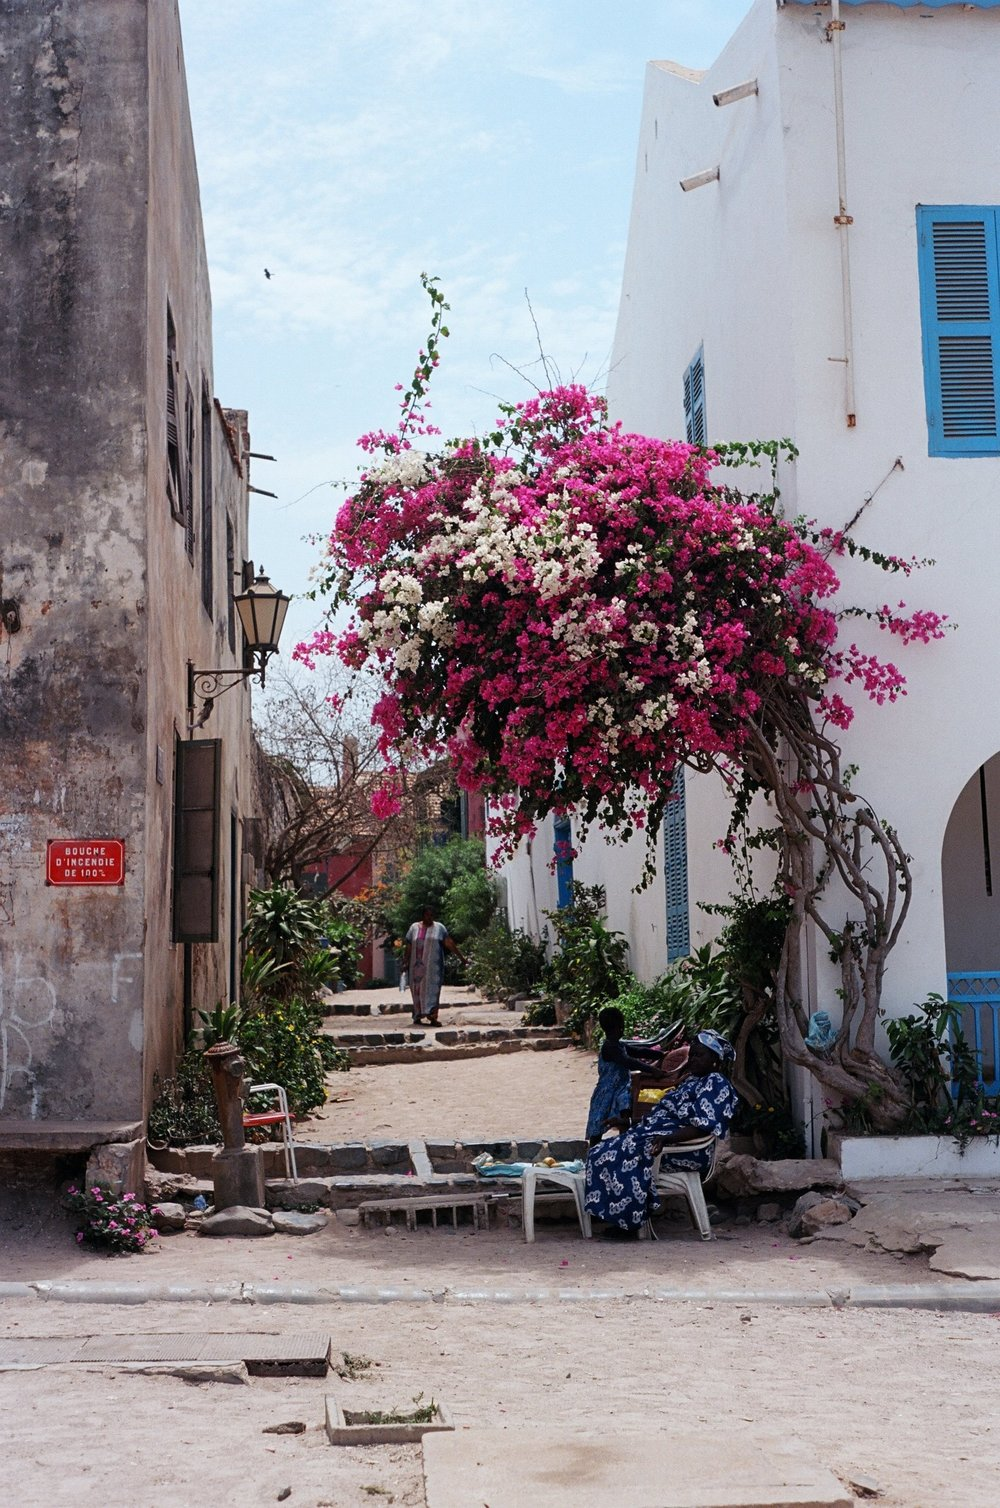 gorée island. locals find refuge from the sun under the shade of a crepe myrtle tree.